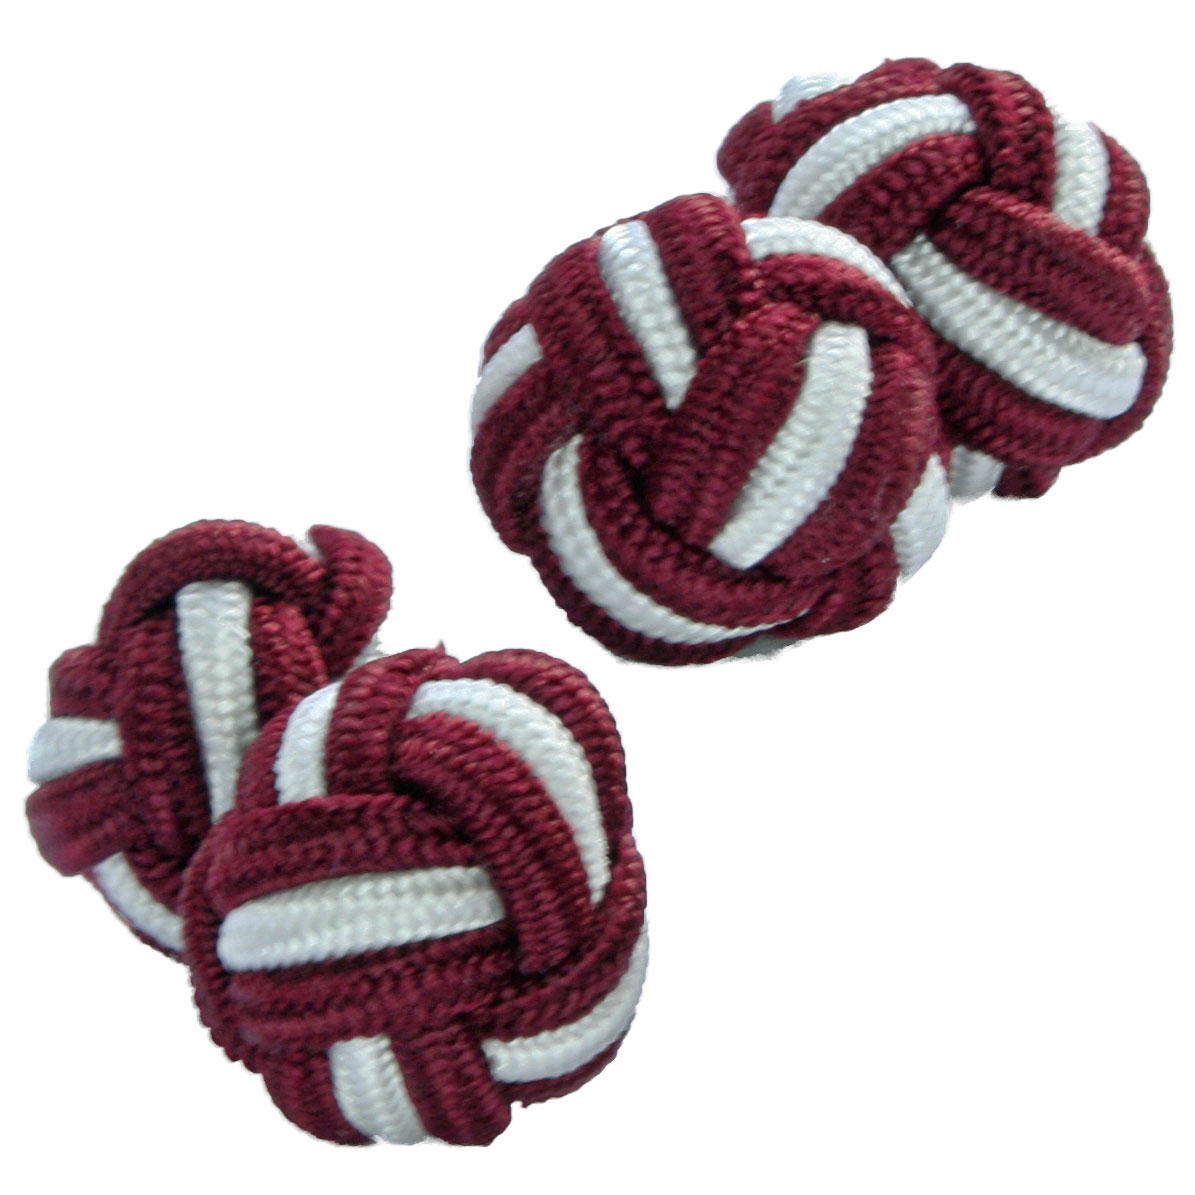 Maroon and White Silk Knot Cufflinks from Cuffs & Co